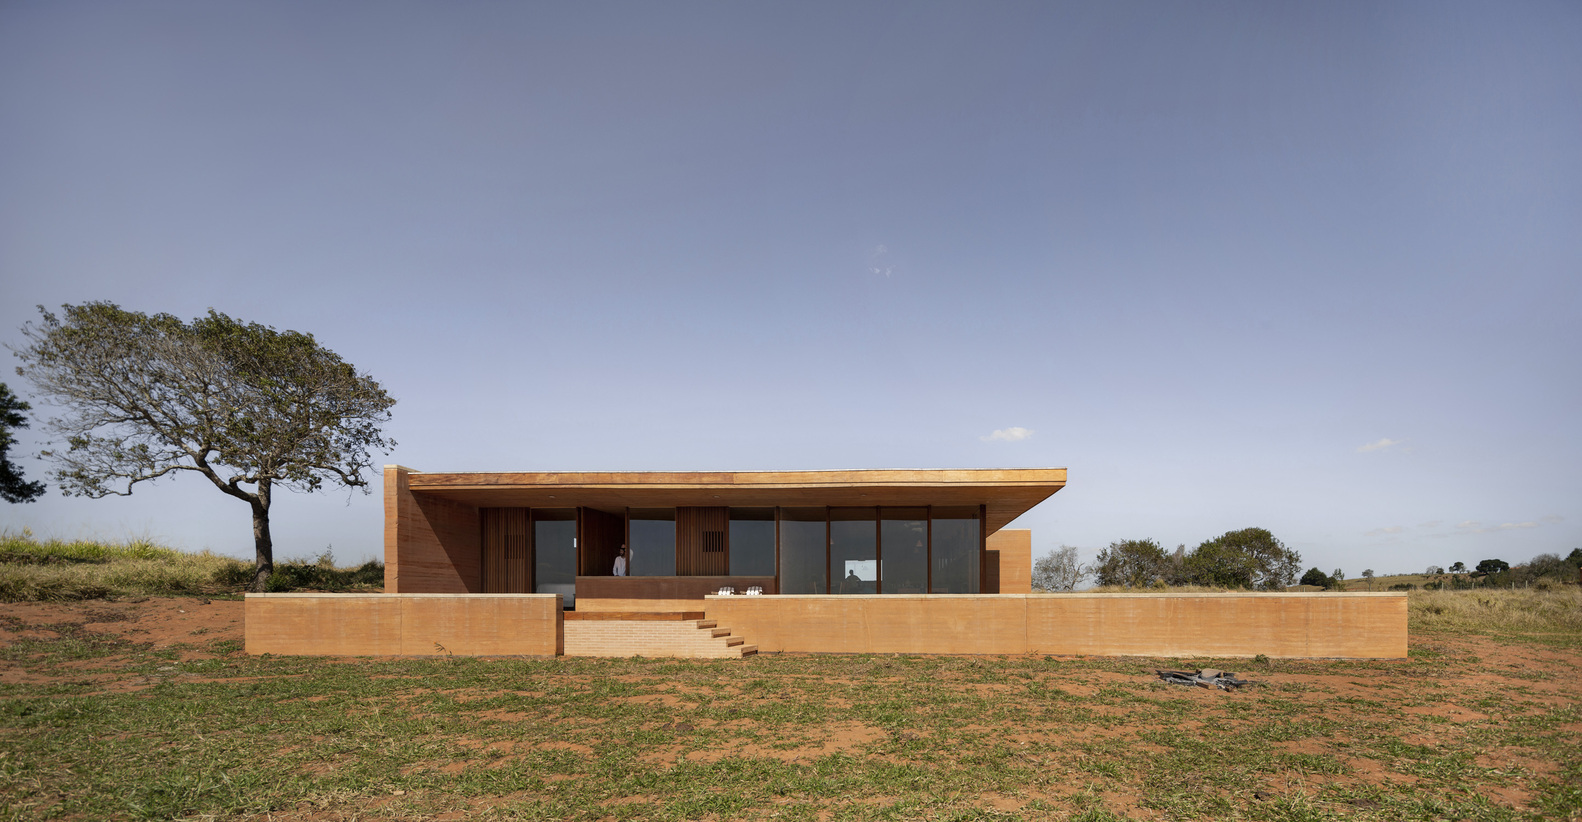 Flat-roofed rammed earth house sitting on hill.